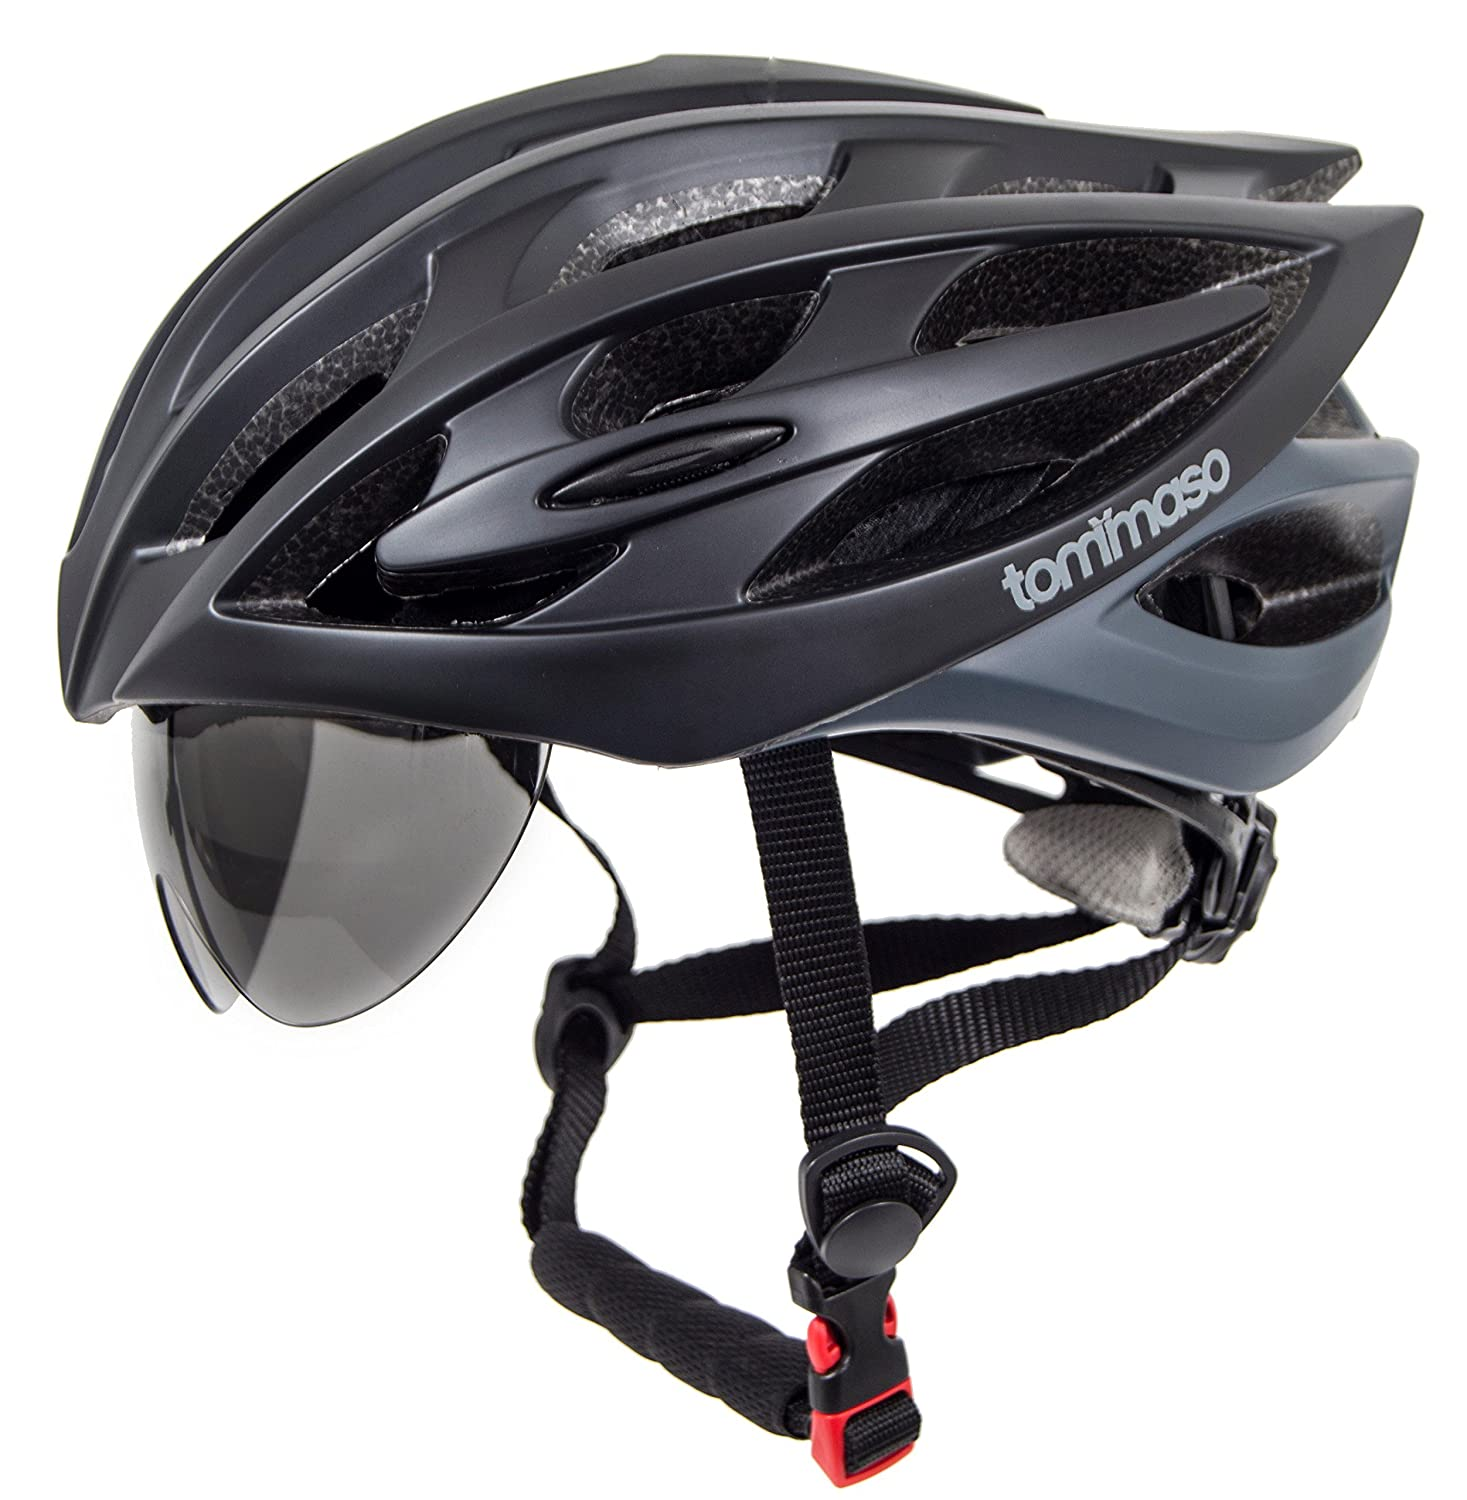 Tommaso Sole Lightweight Cycling Helmet Retractable Eye Shield Road MTB Adjustable Fit 2 Sizes 4 Colors Black,Matte Black,White,Titanium Certified Safe Protection Men Women Youth